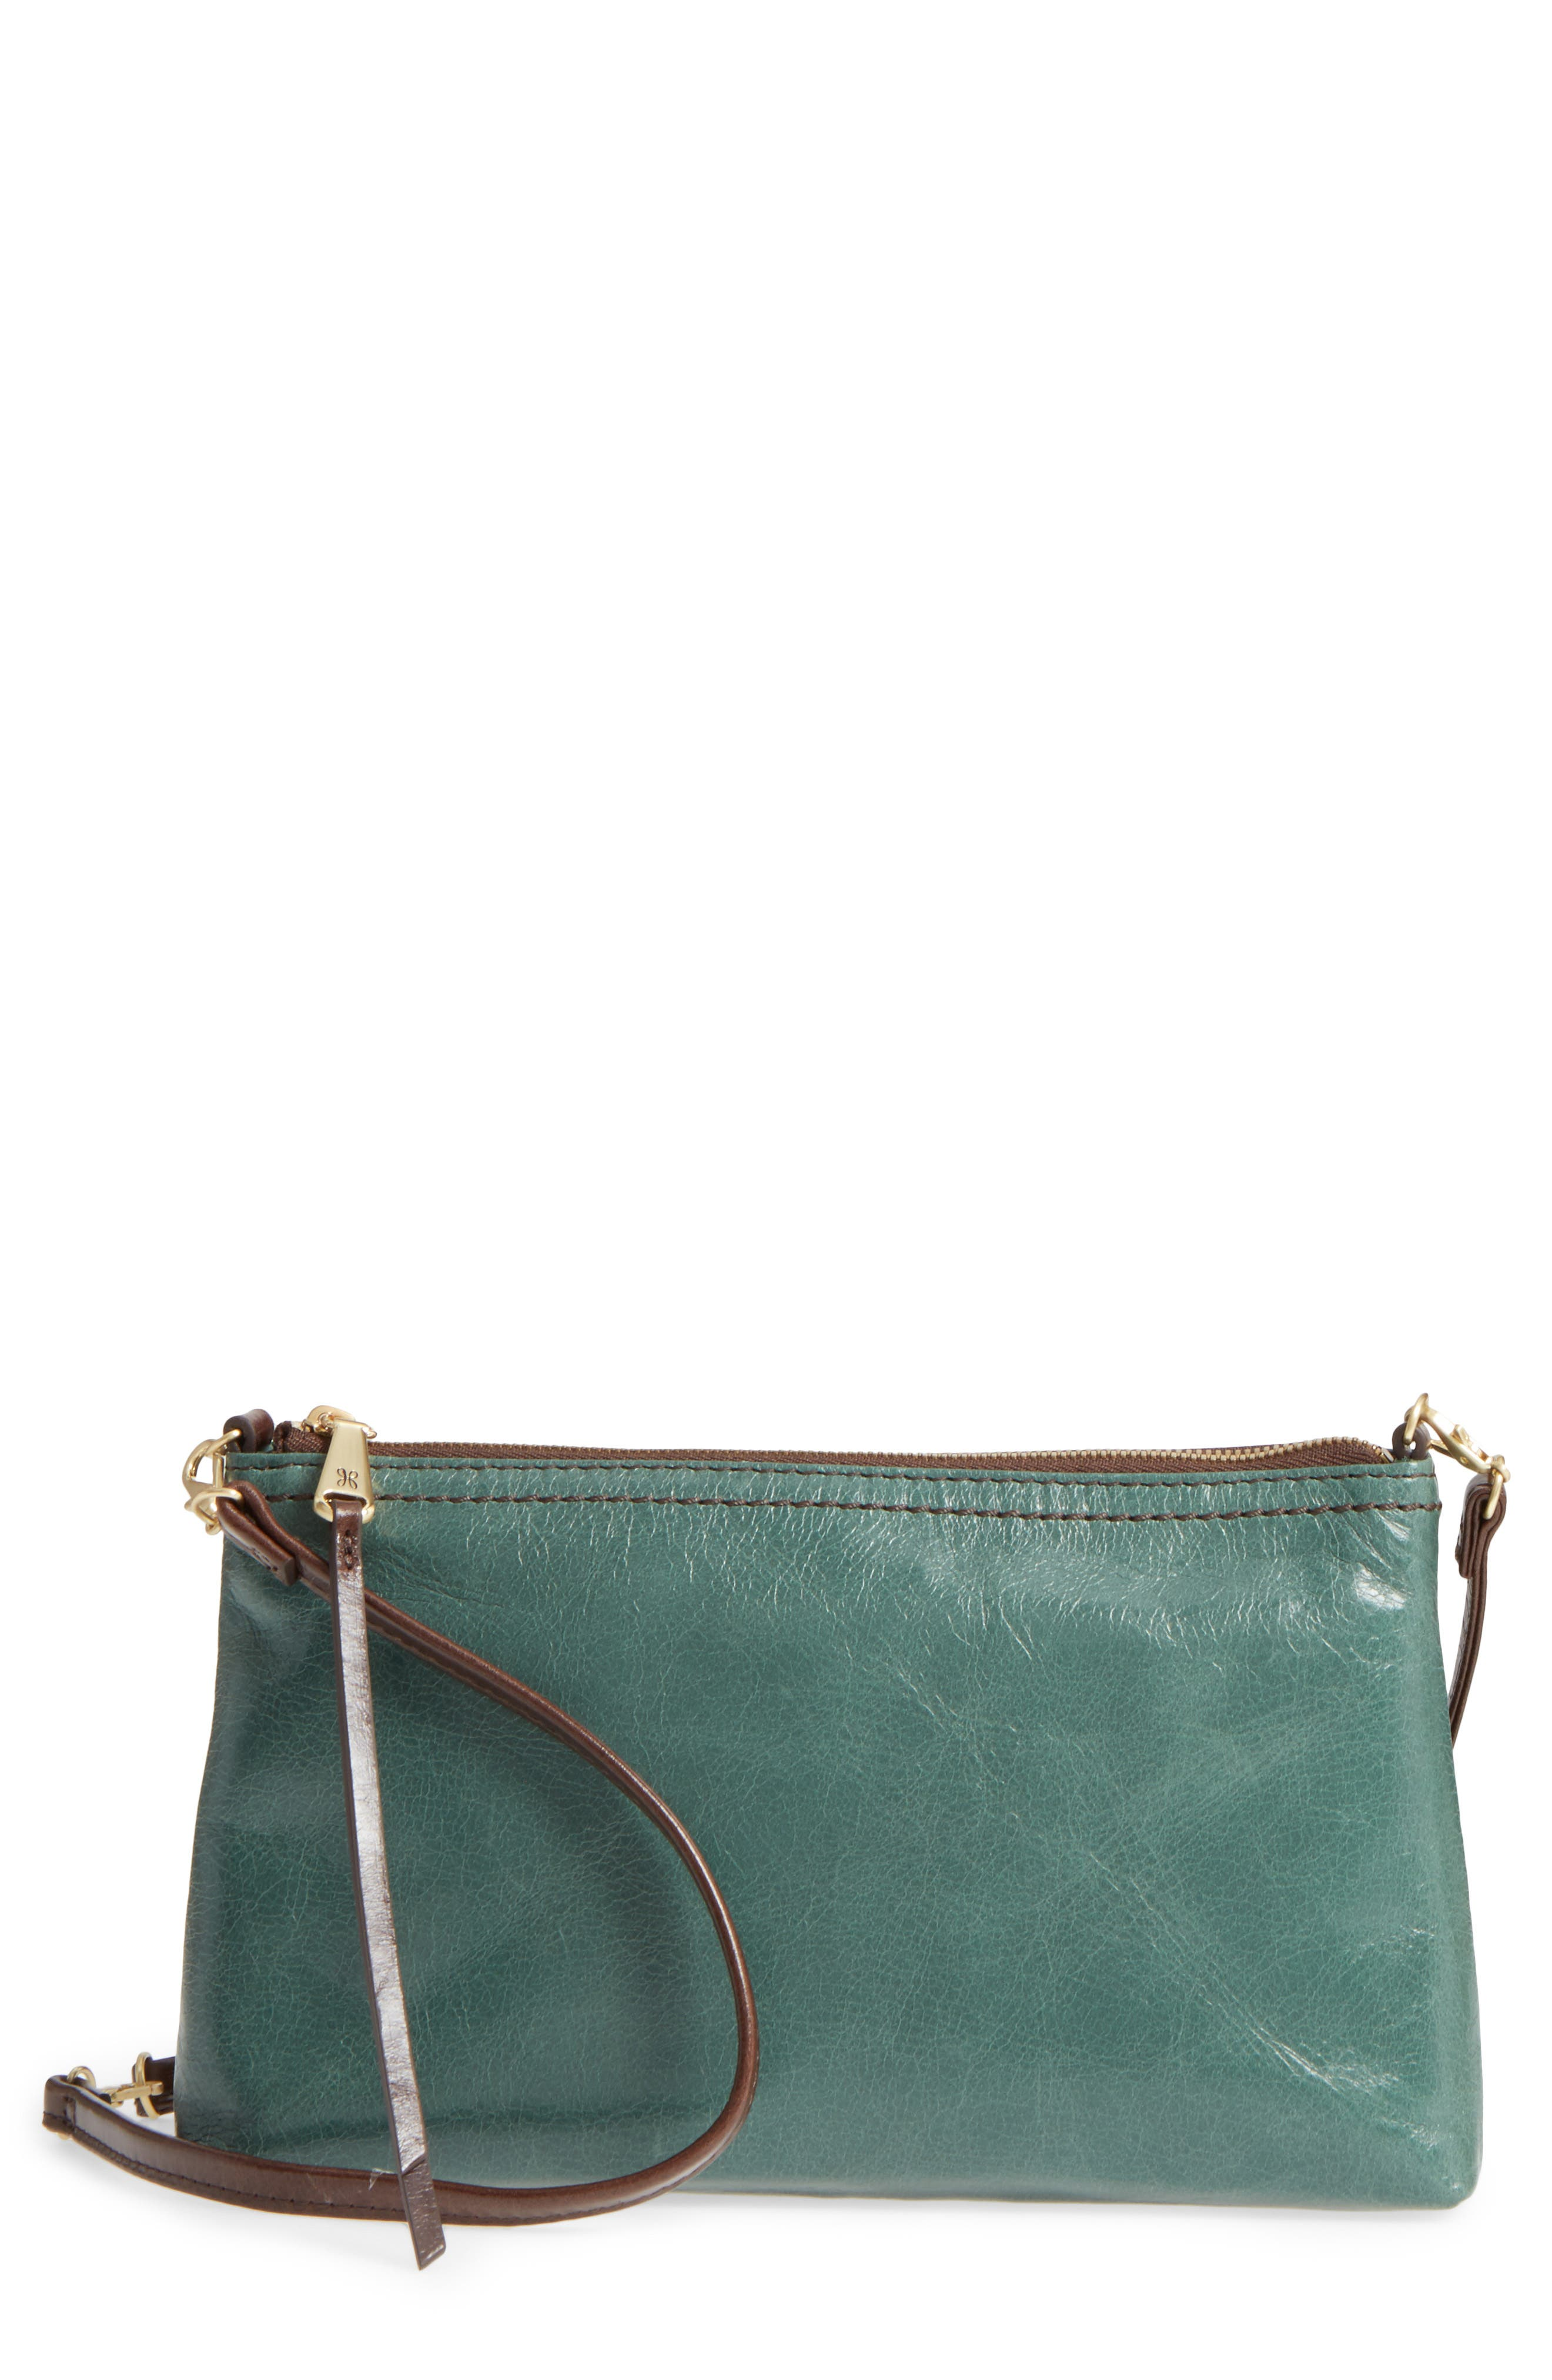 'Darcy' Leather Crossbody Bag,                             Main thumbnail 4, color,